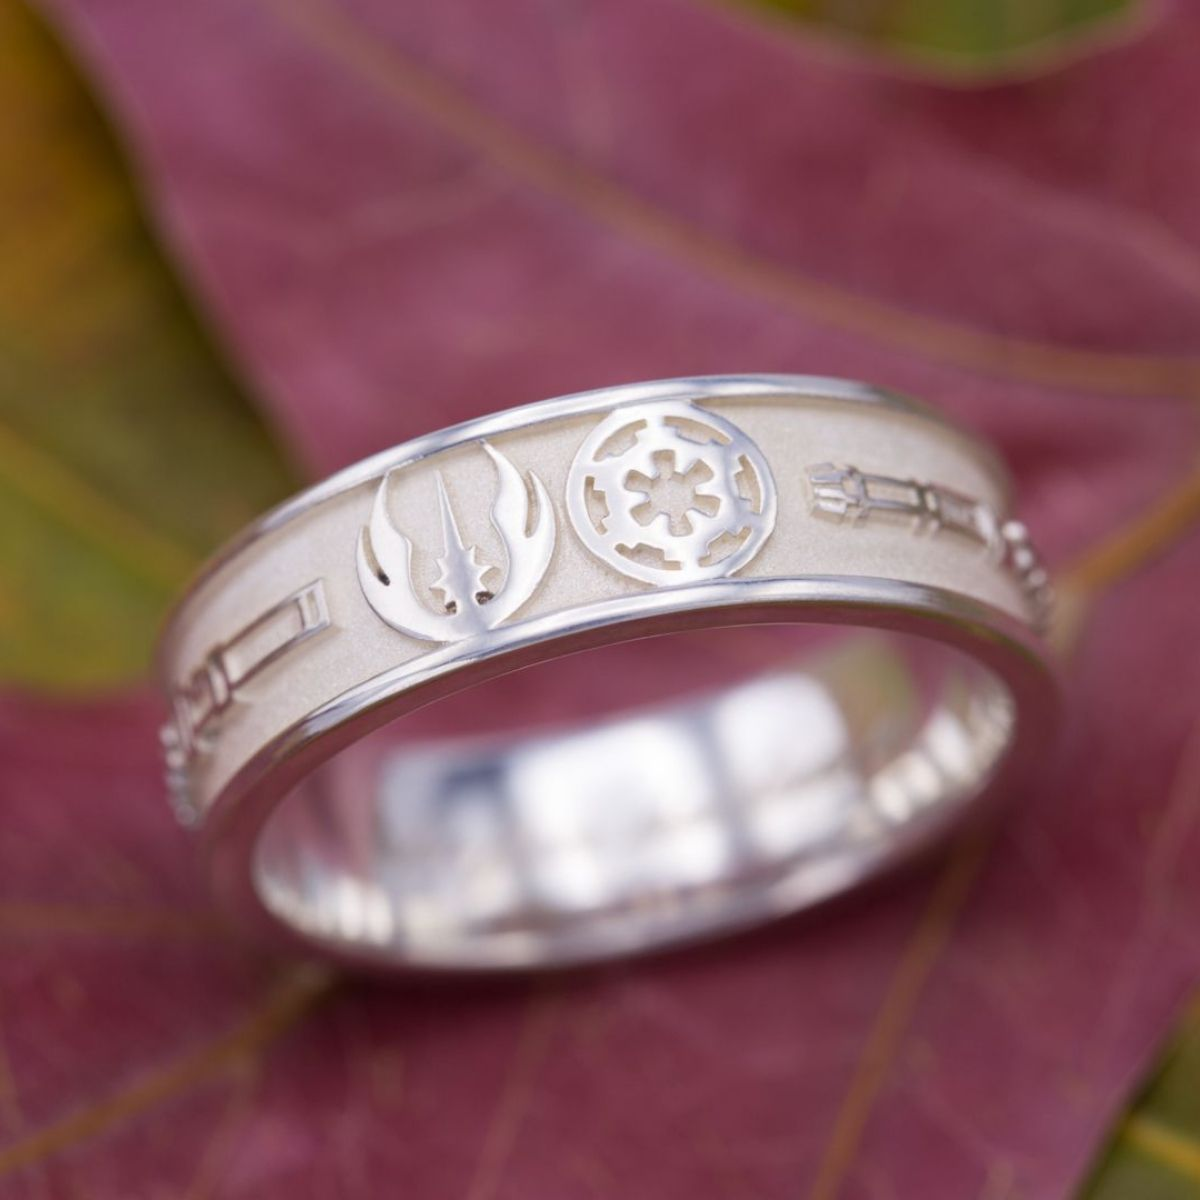 band wedding engraving for every rings gettyimages ideas couple ring meaningful